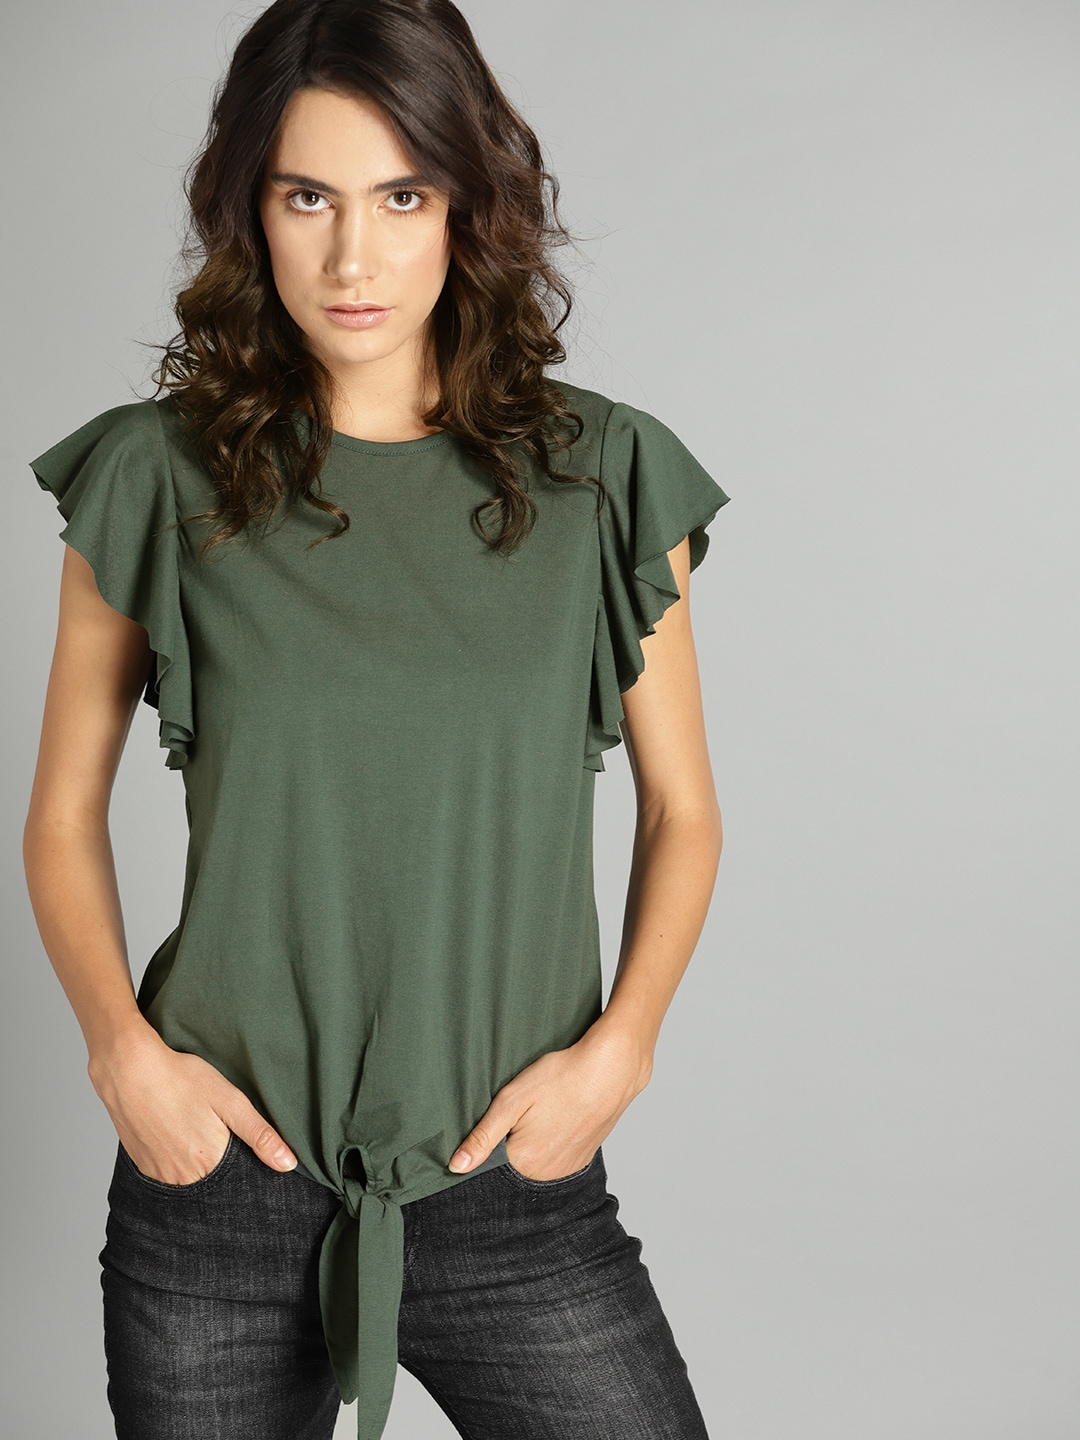 e5b9e02705429 Tops - Buy Designer Tops for Girls   Women Online